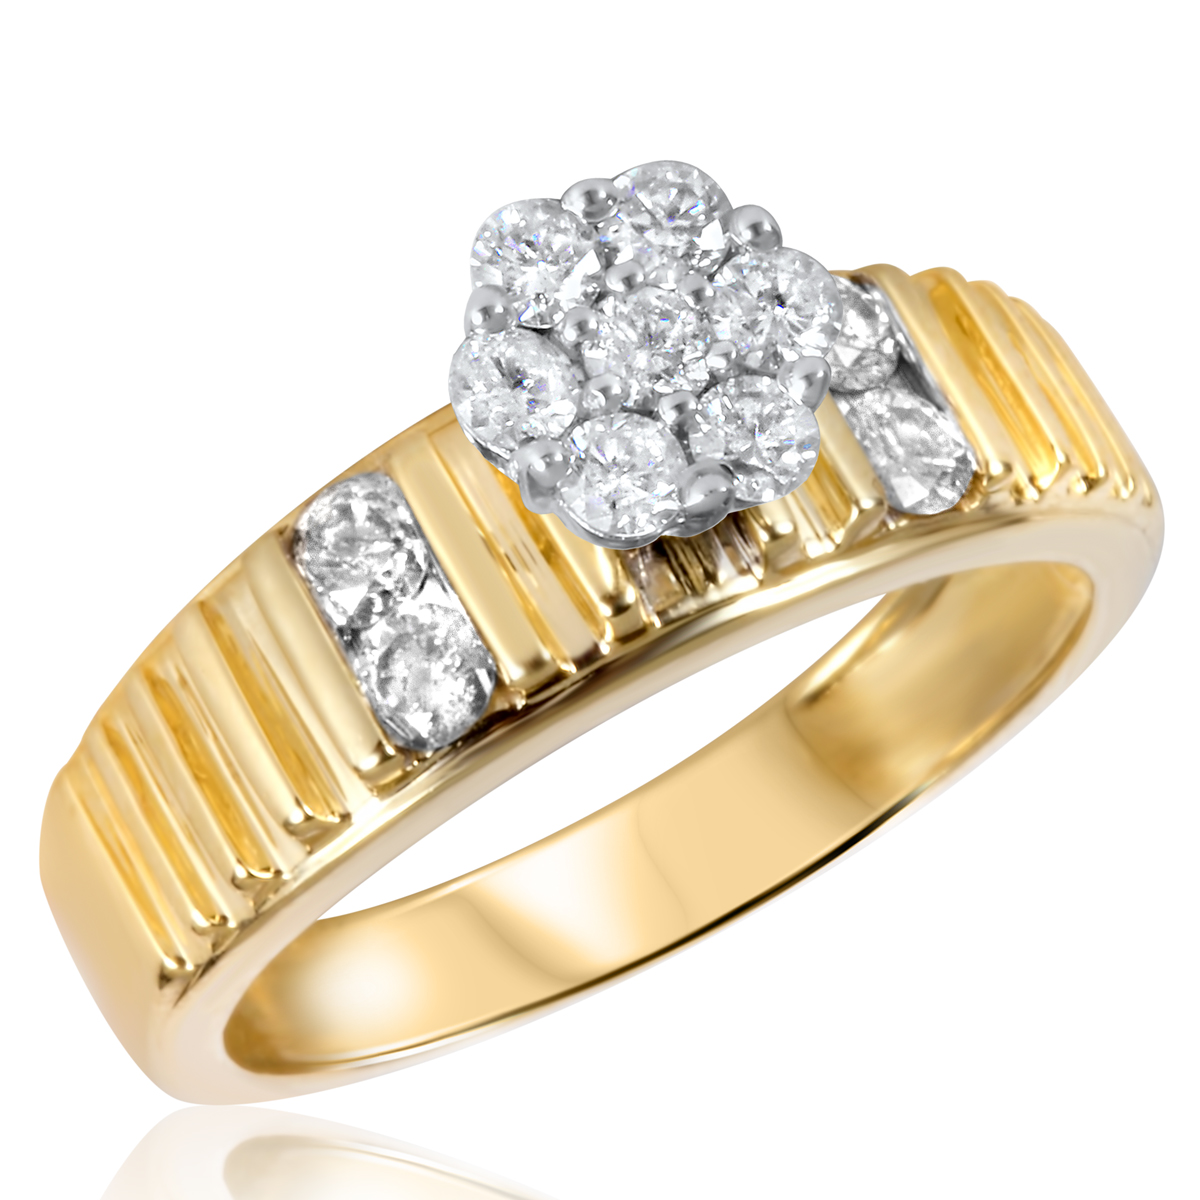 5/8 CT. T.W. Diamond Ladies Engagement Ring 14K Yellow Gold- Size 8